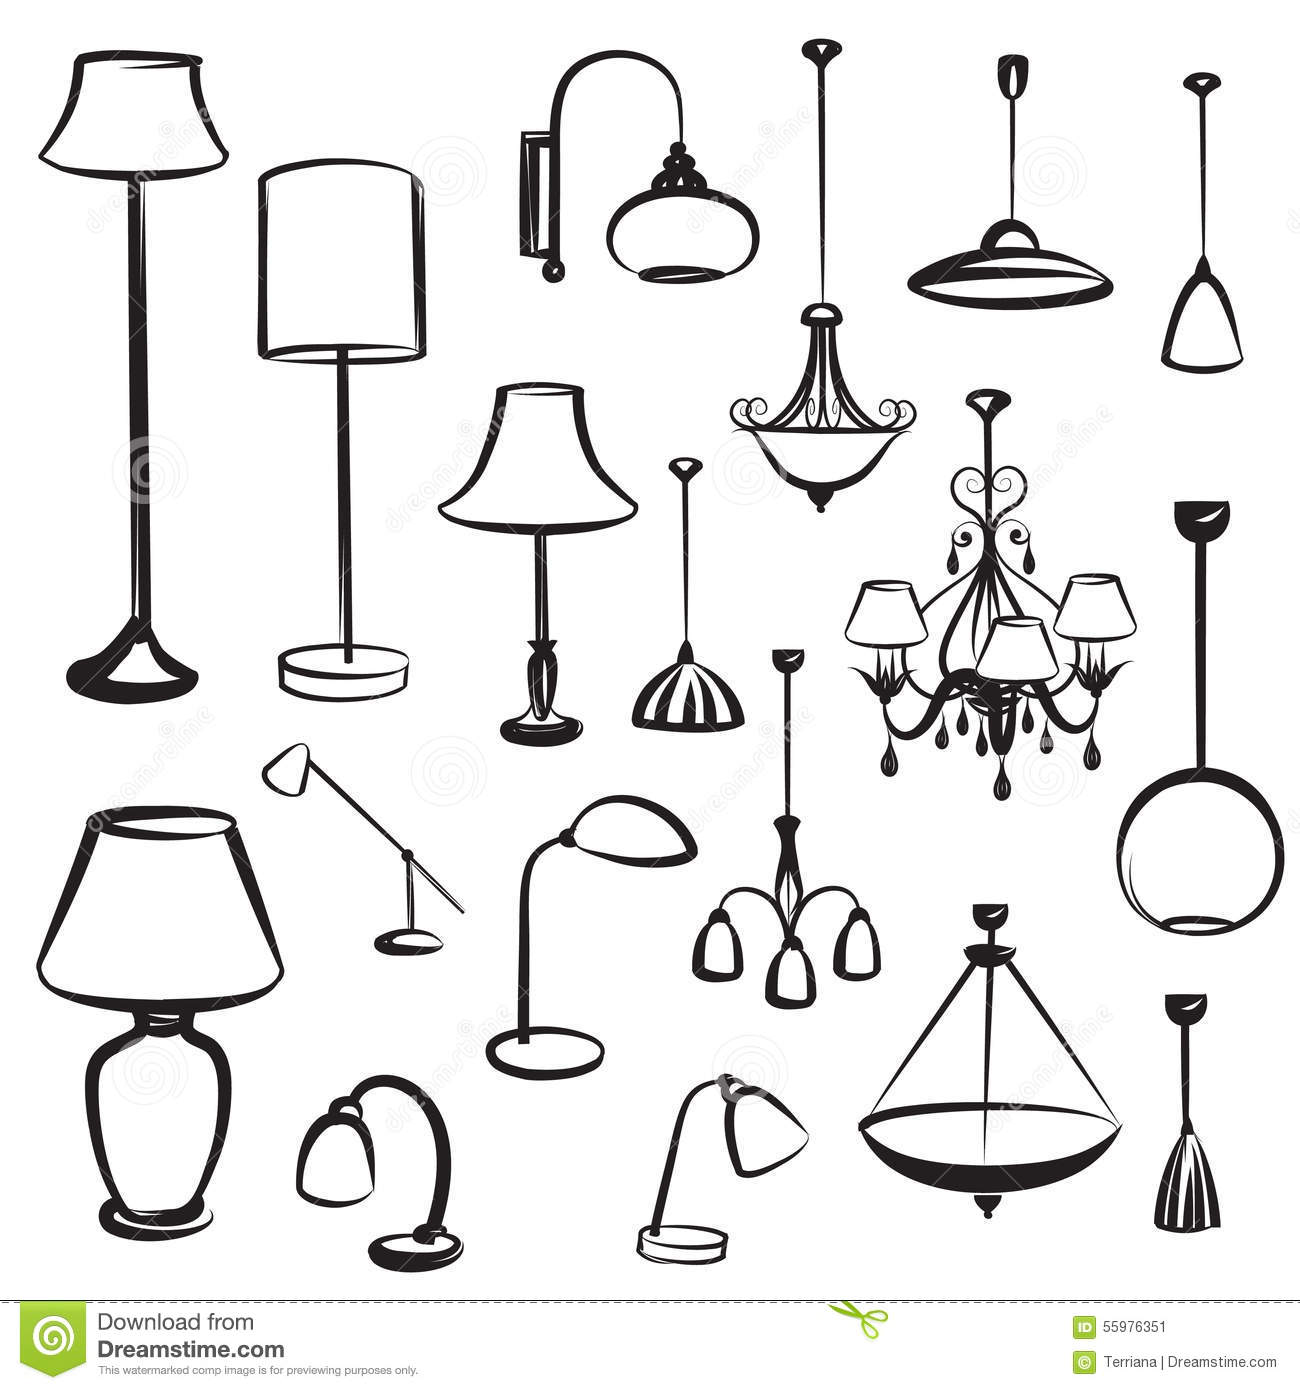 Lamp Furniture Silhouettes Set. Ceiling Light Design Collection.